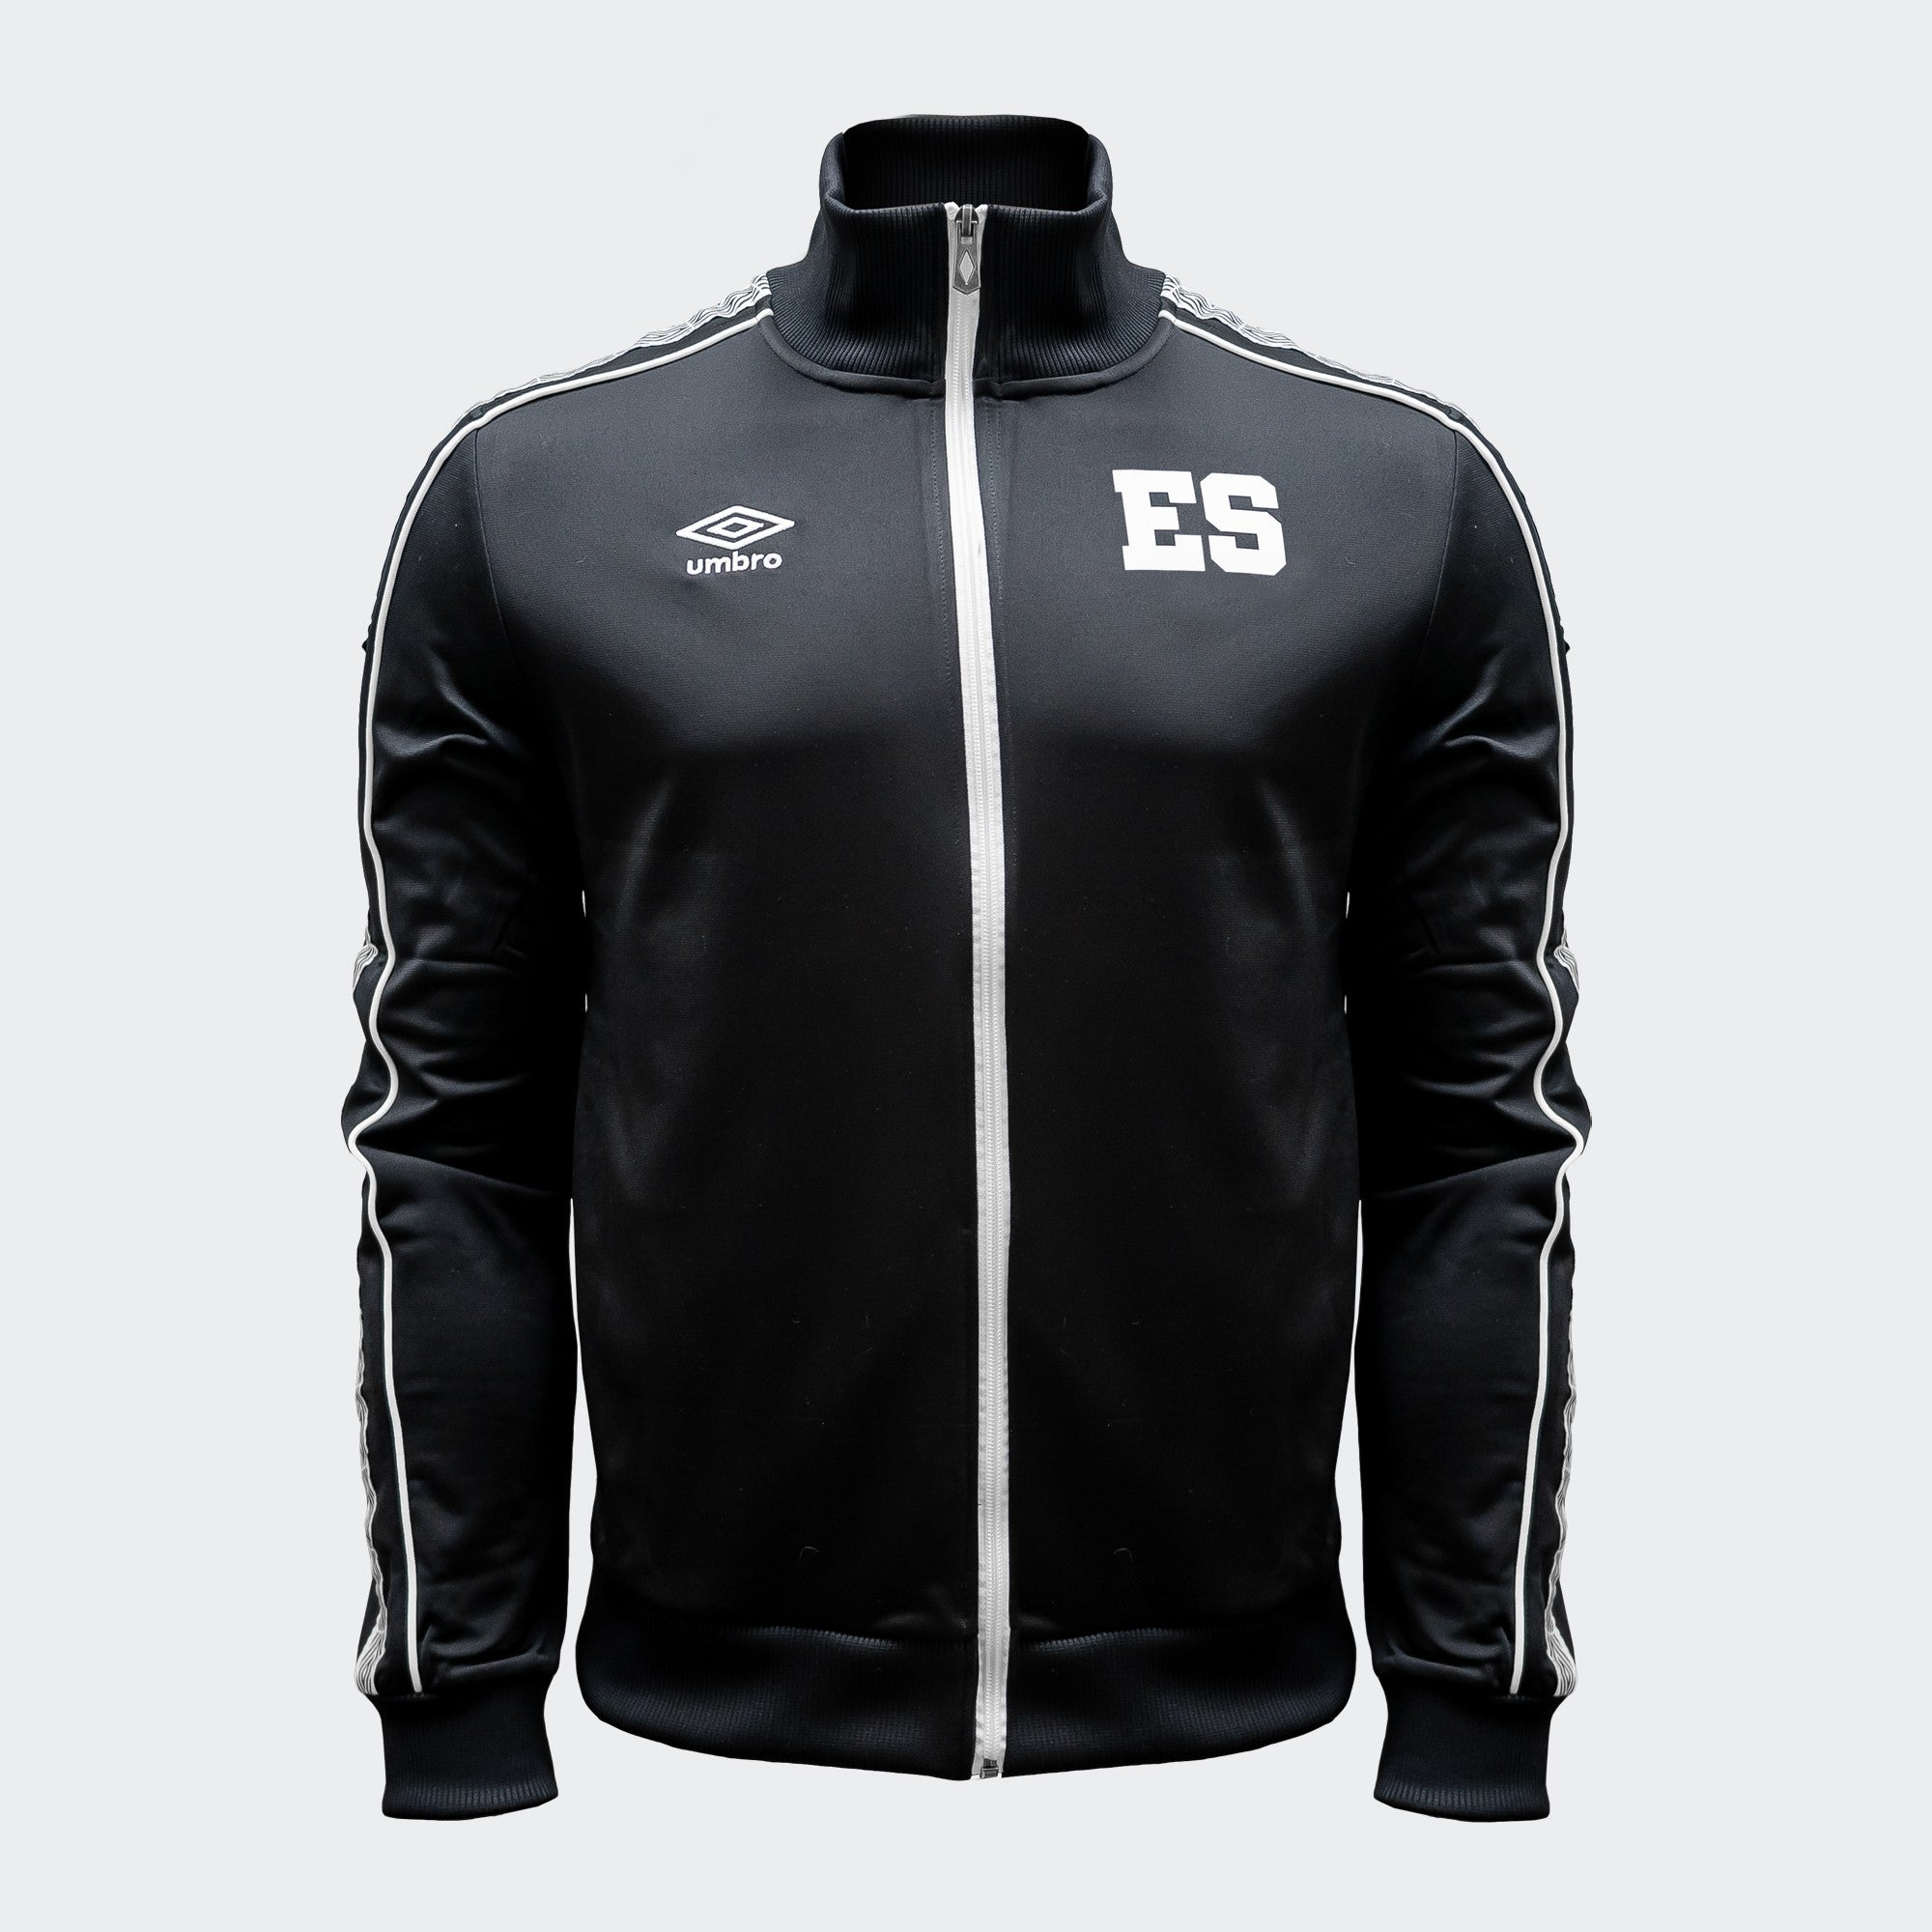 Men's Classic El Salvador Jacket - Black/White